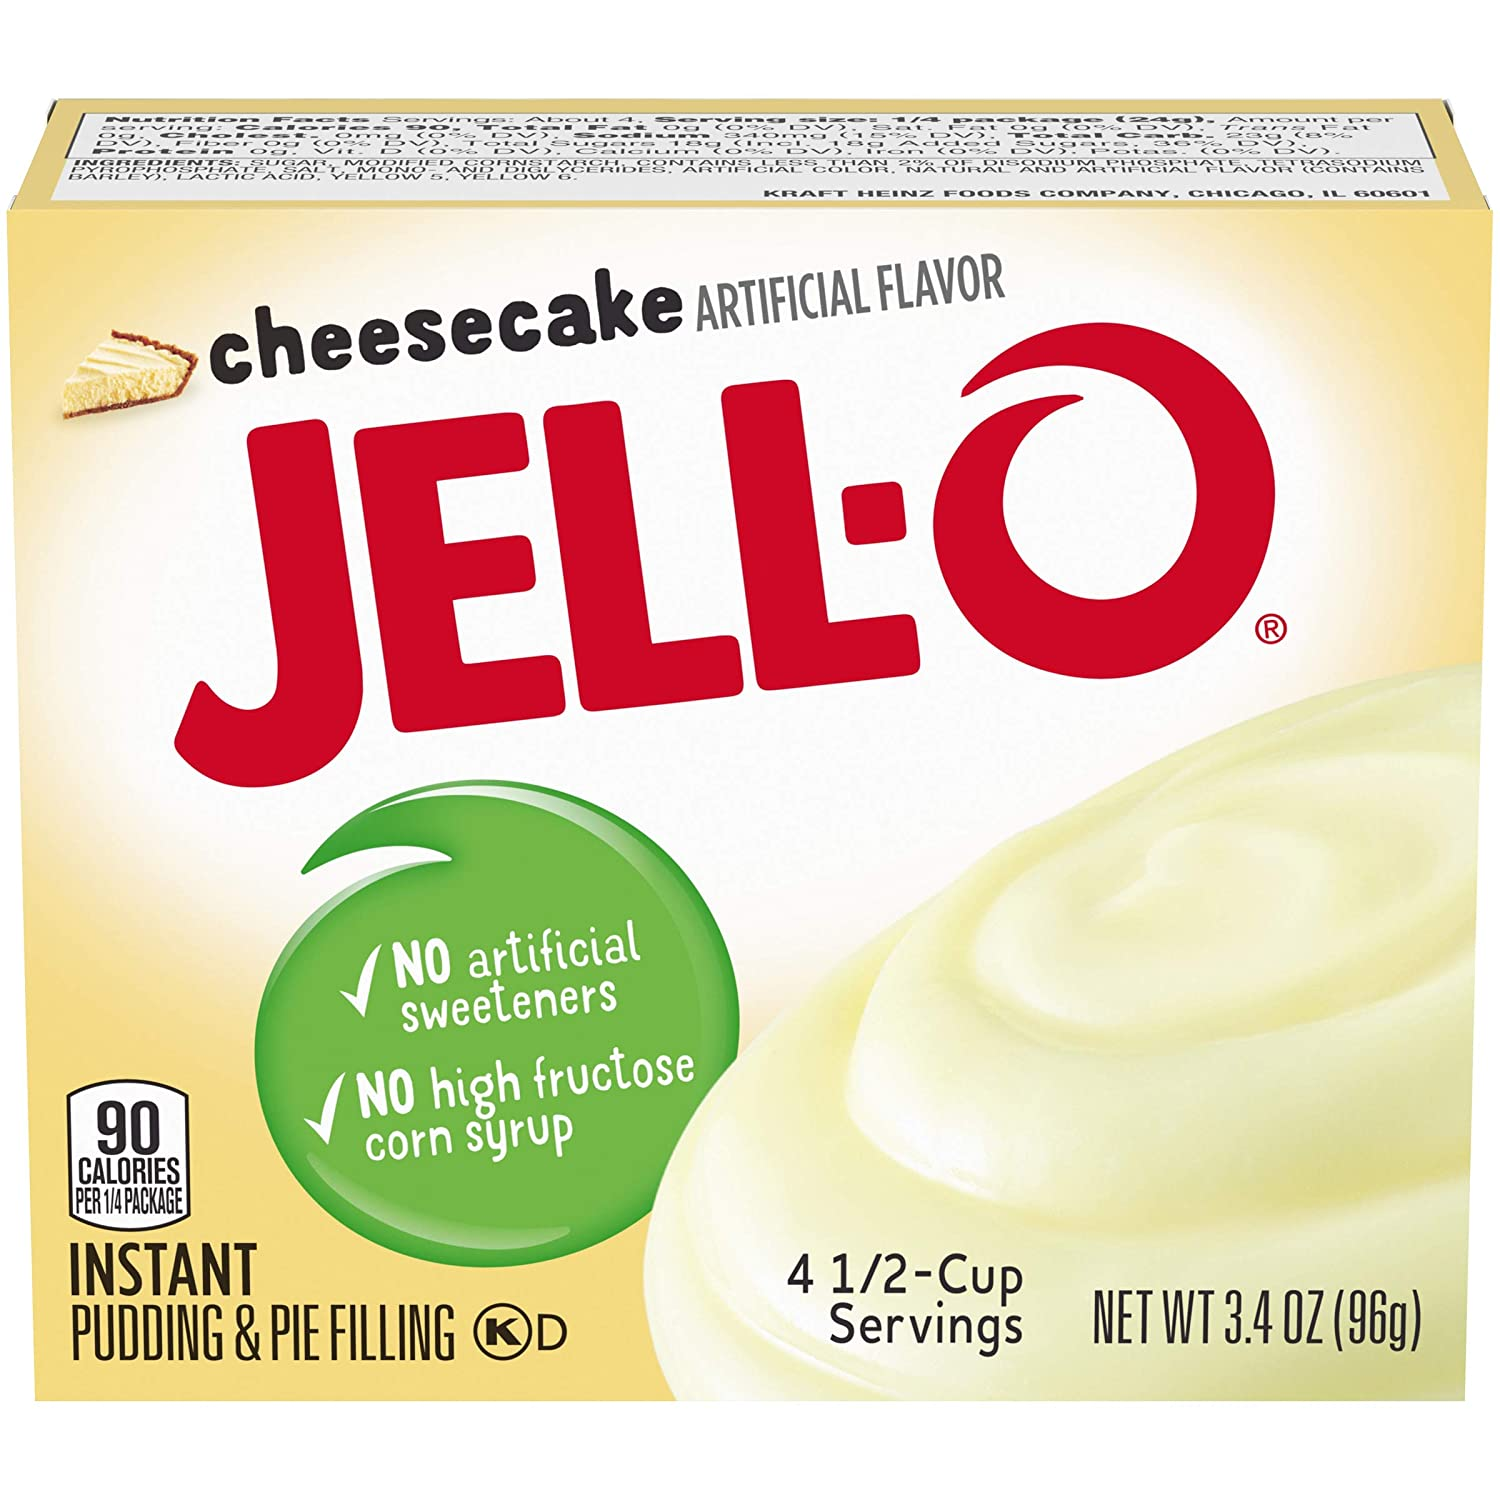 JELL-O Instant Pudding & Pie Filling Mix, Cheesecake, 6 Count, 20.4 Ounce